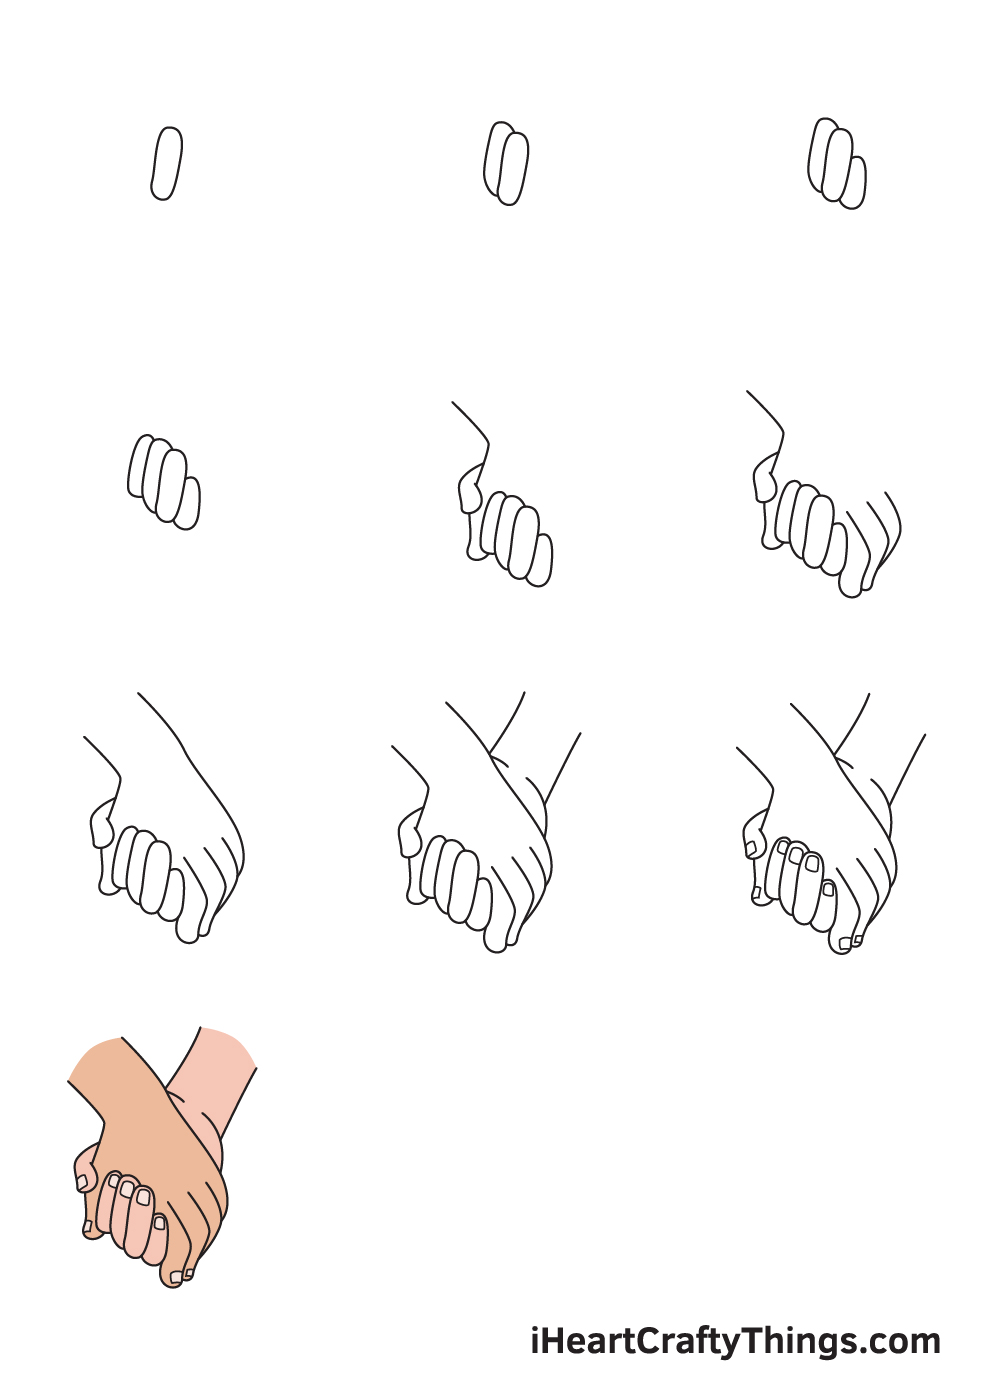 drawing holding hands in 9 steps